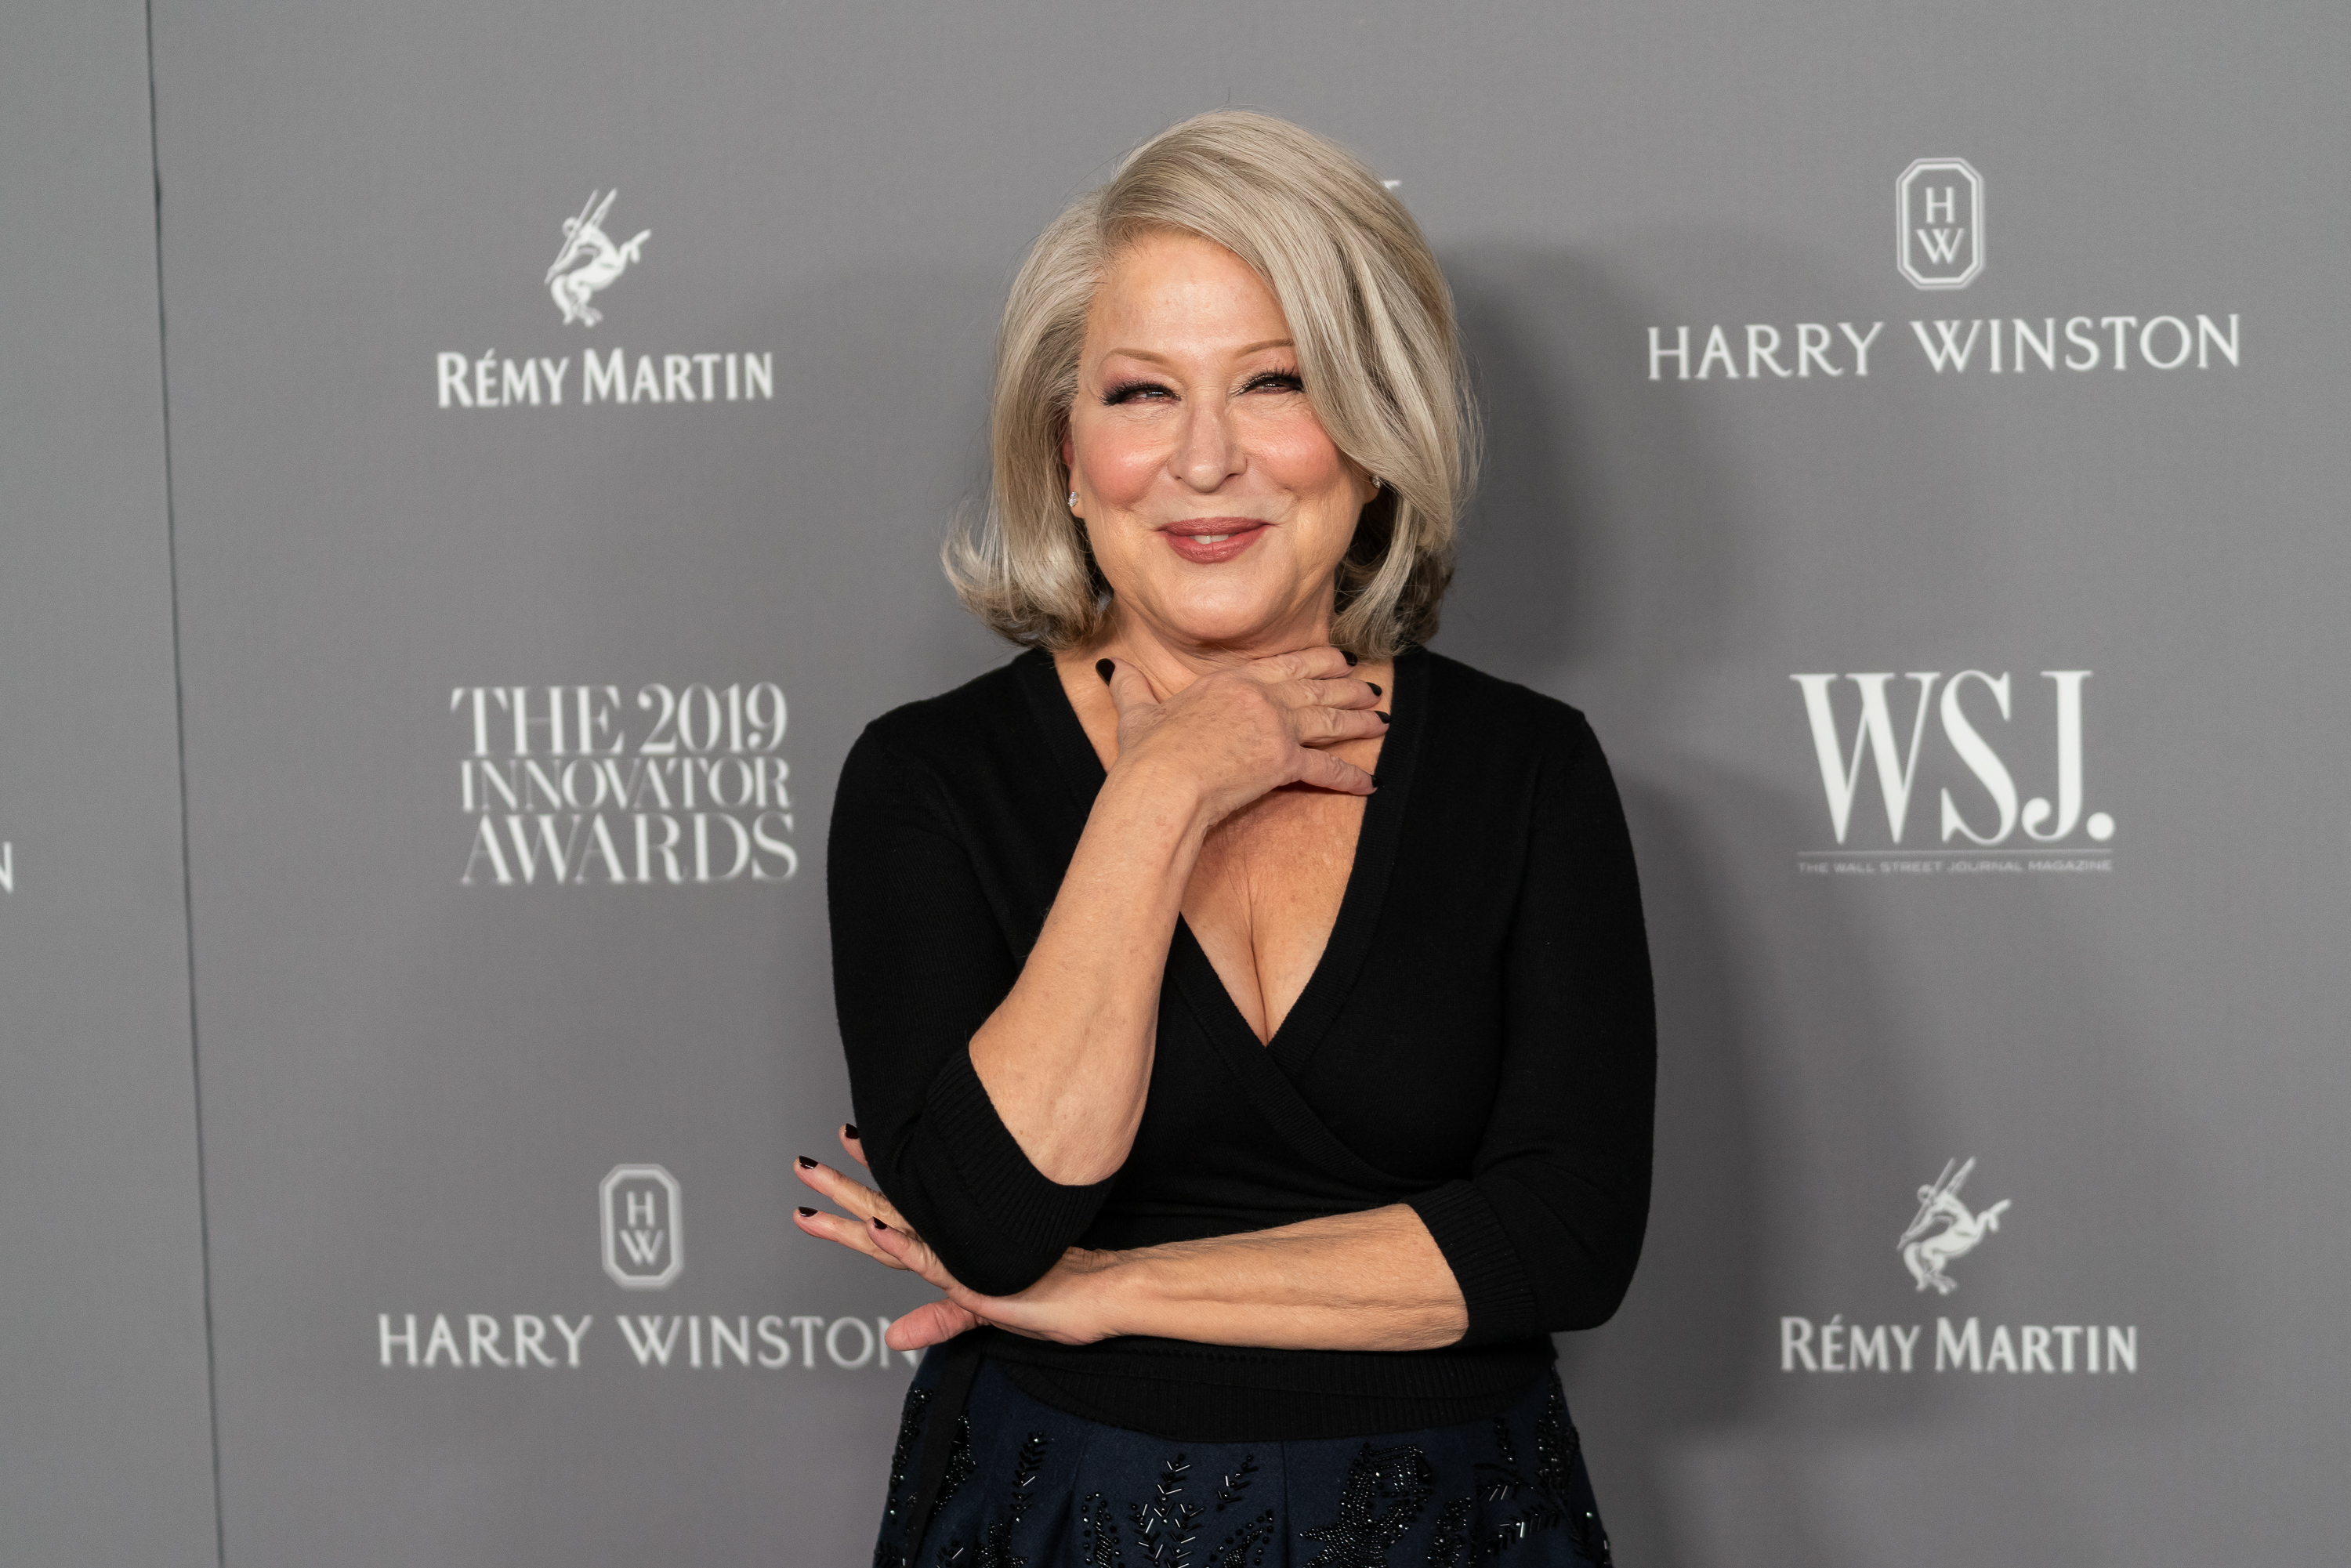 Bette Midler takes aim at Kayleigh McEnany, saying Harvard 'has a lot to answer for'